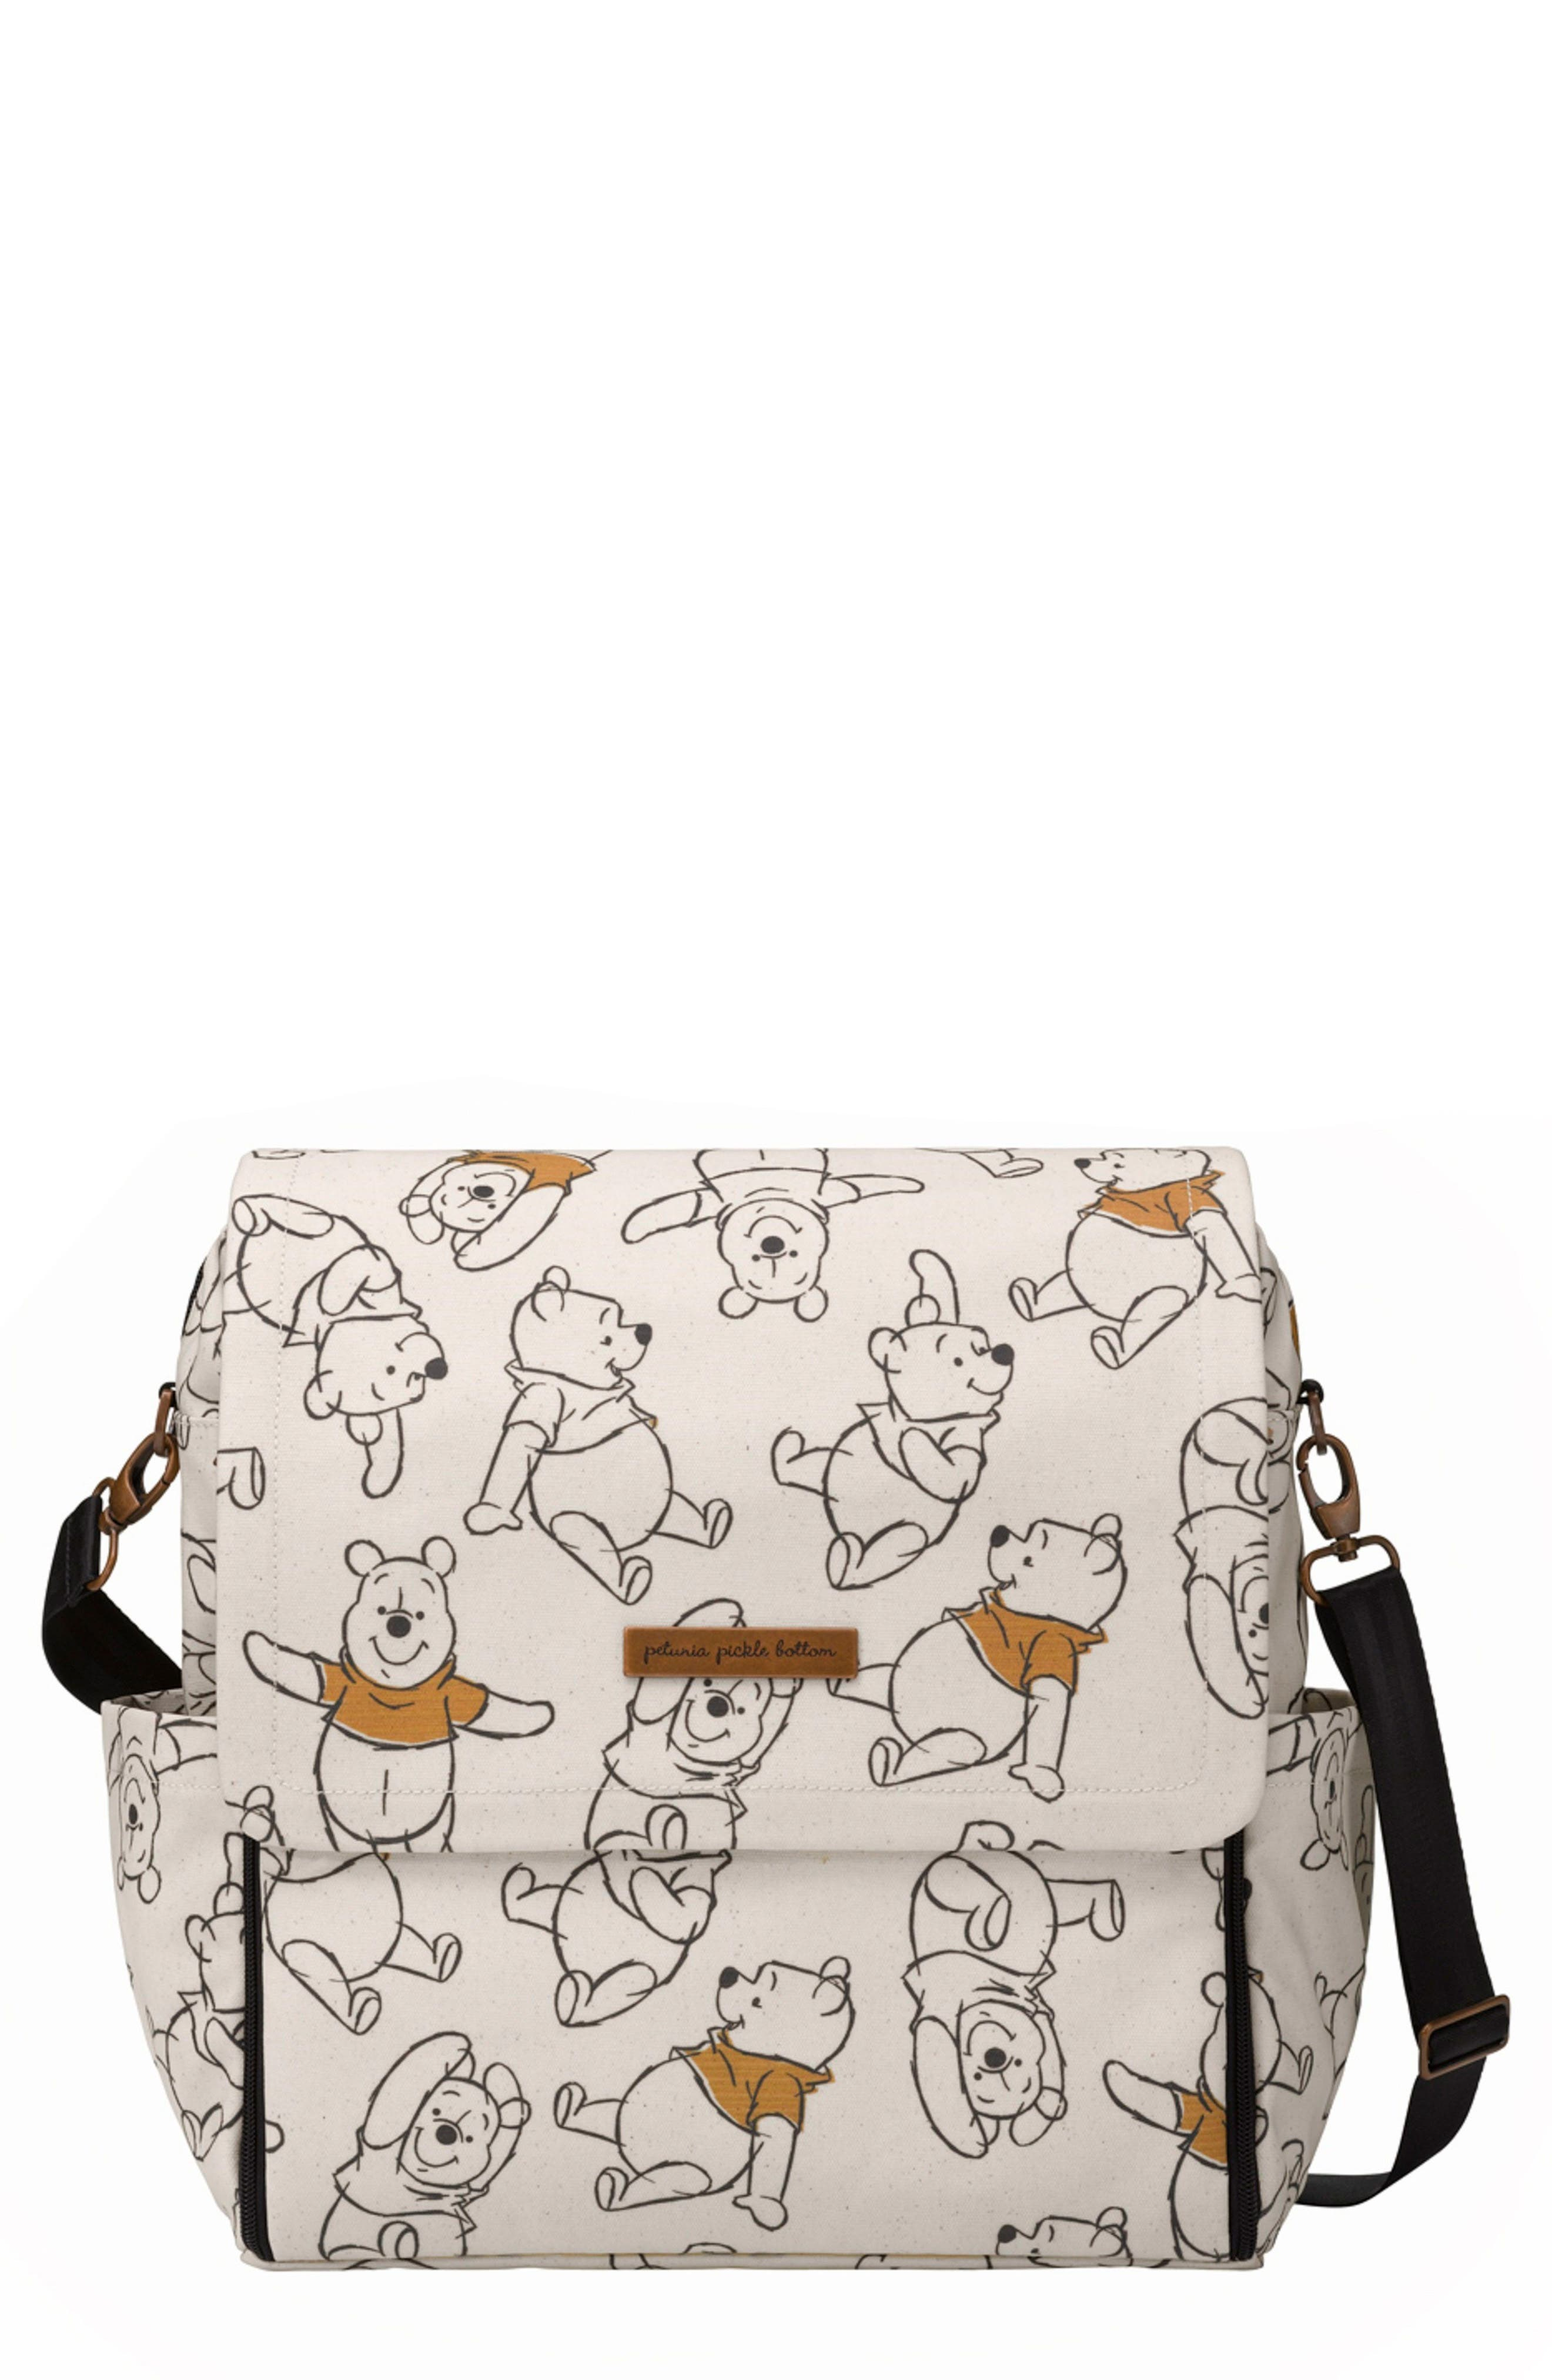 Boxy Backpack - Disney Diaper Bag,                         Main,                         color, SKETCHBOOK WINNIE THE POOH